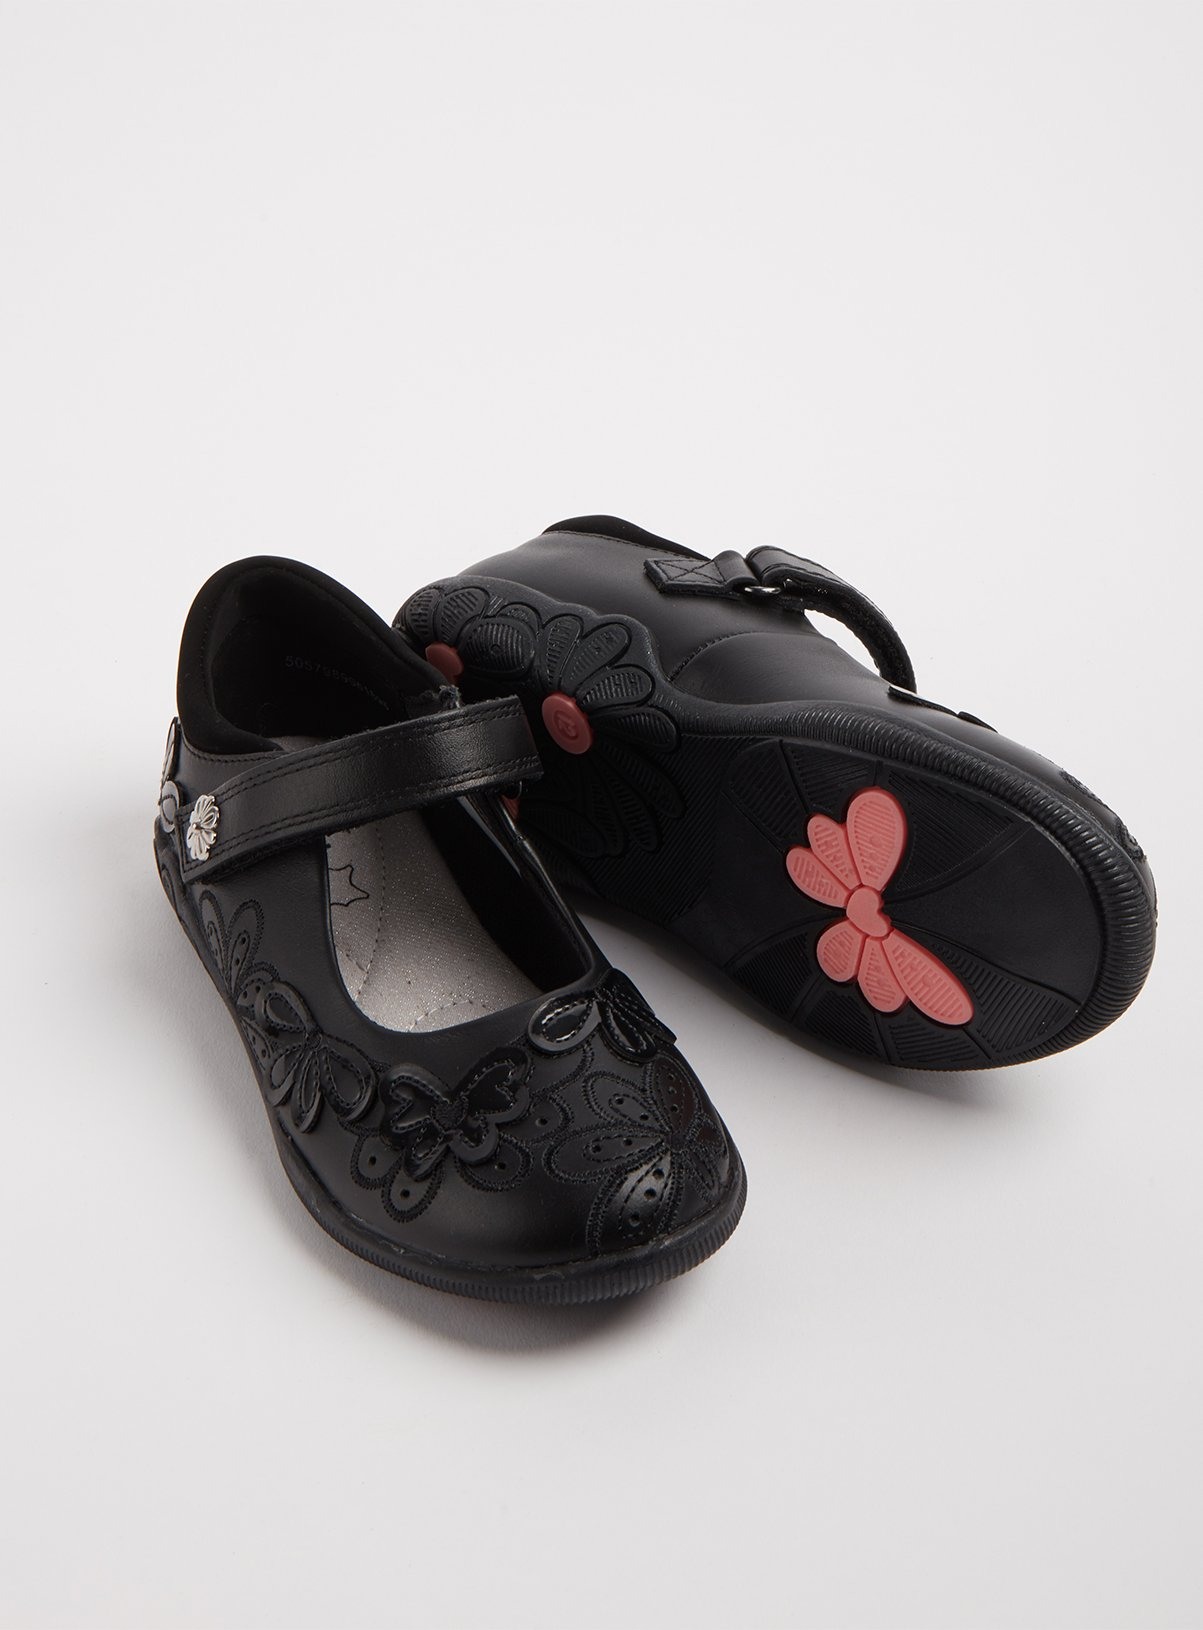 Black Leather Floral One Touch Strap School Shoes - 13 Infan